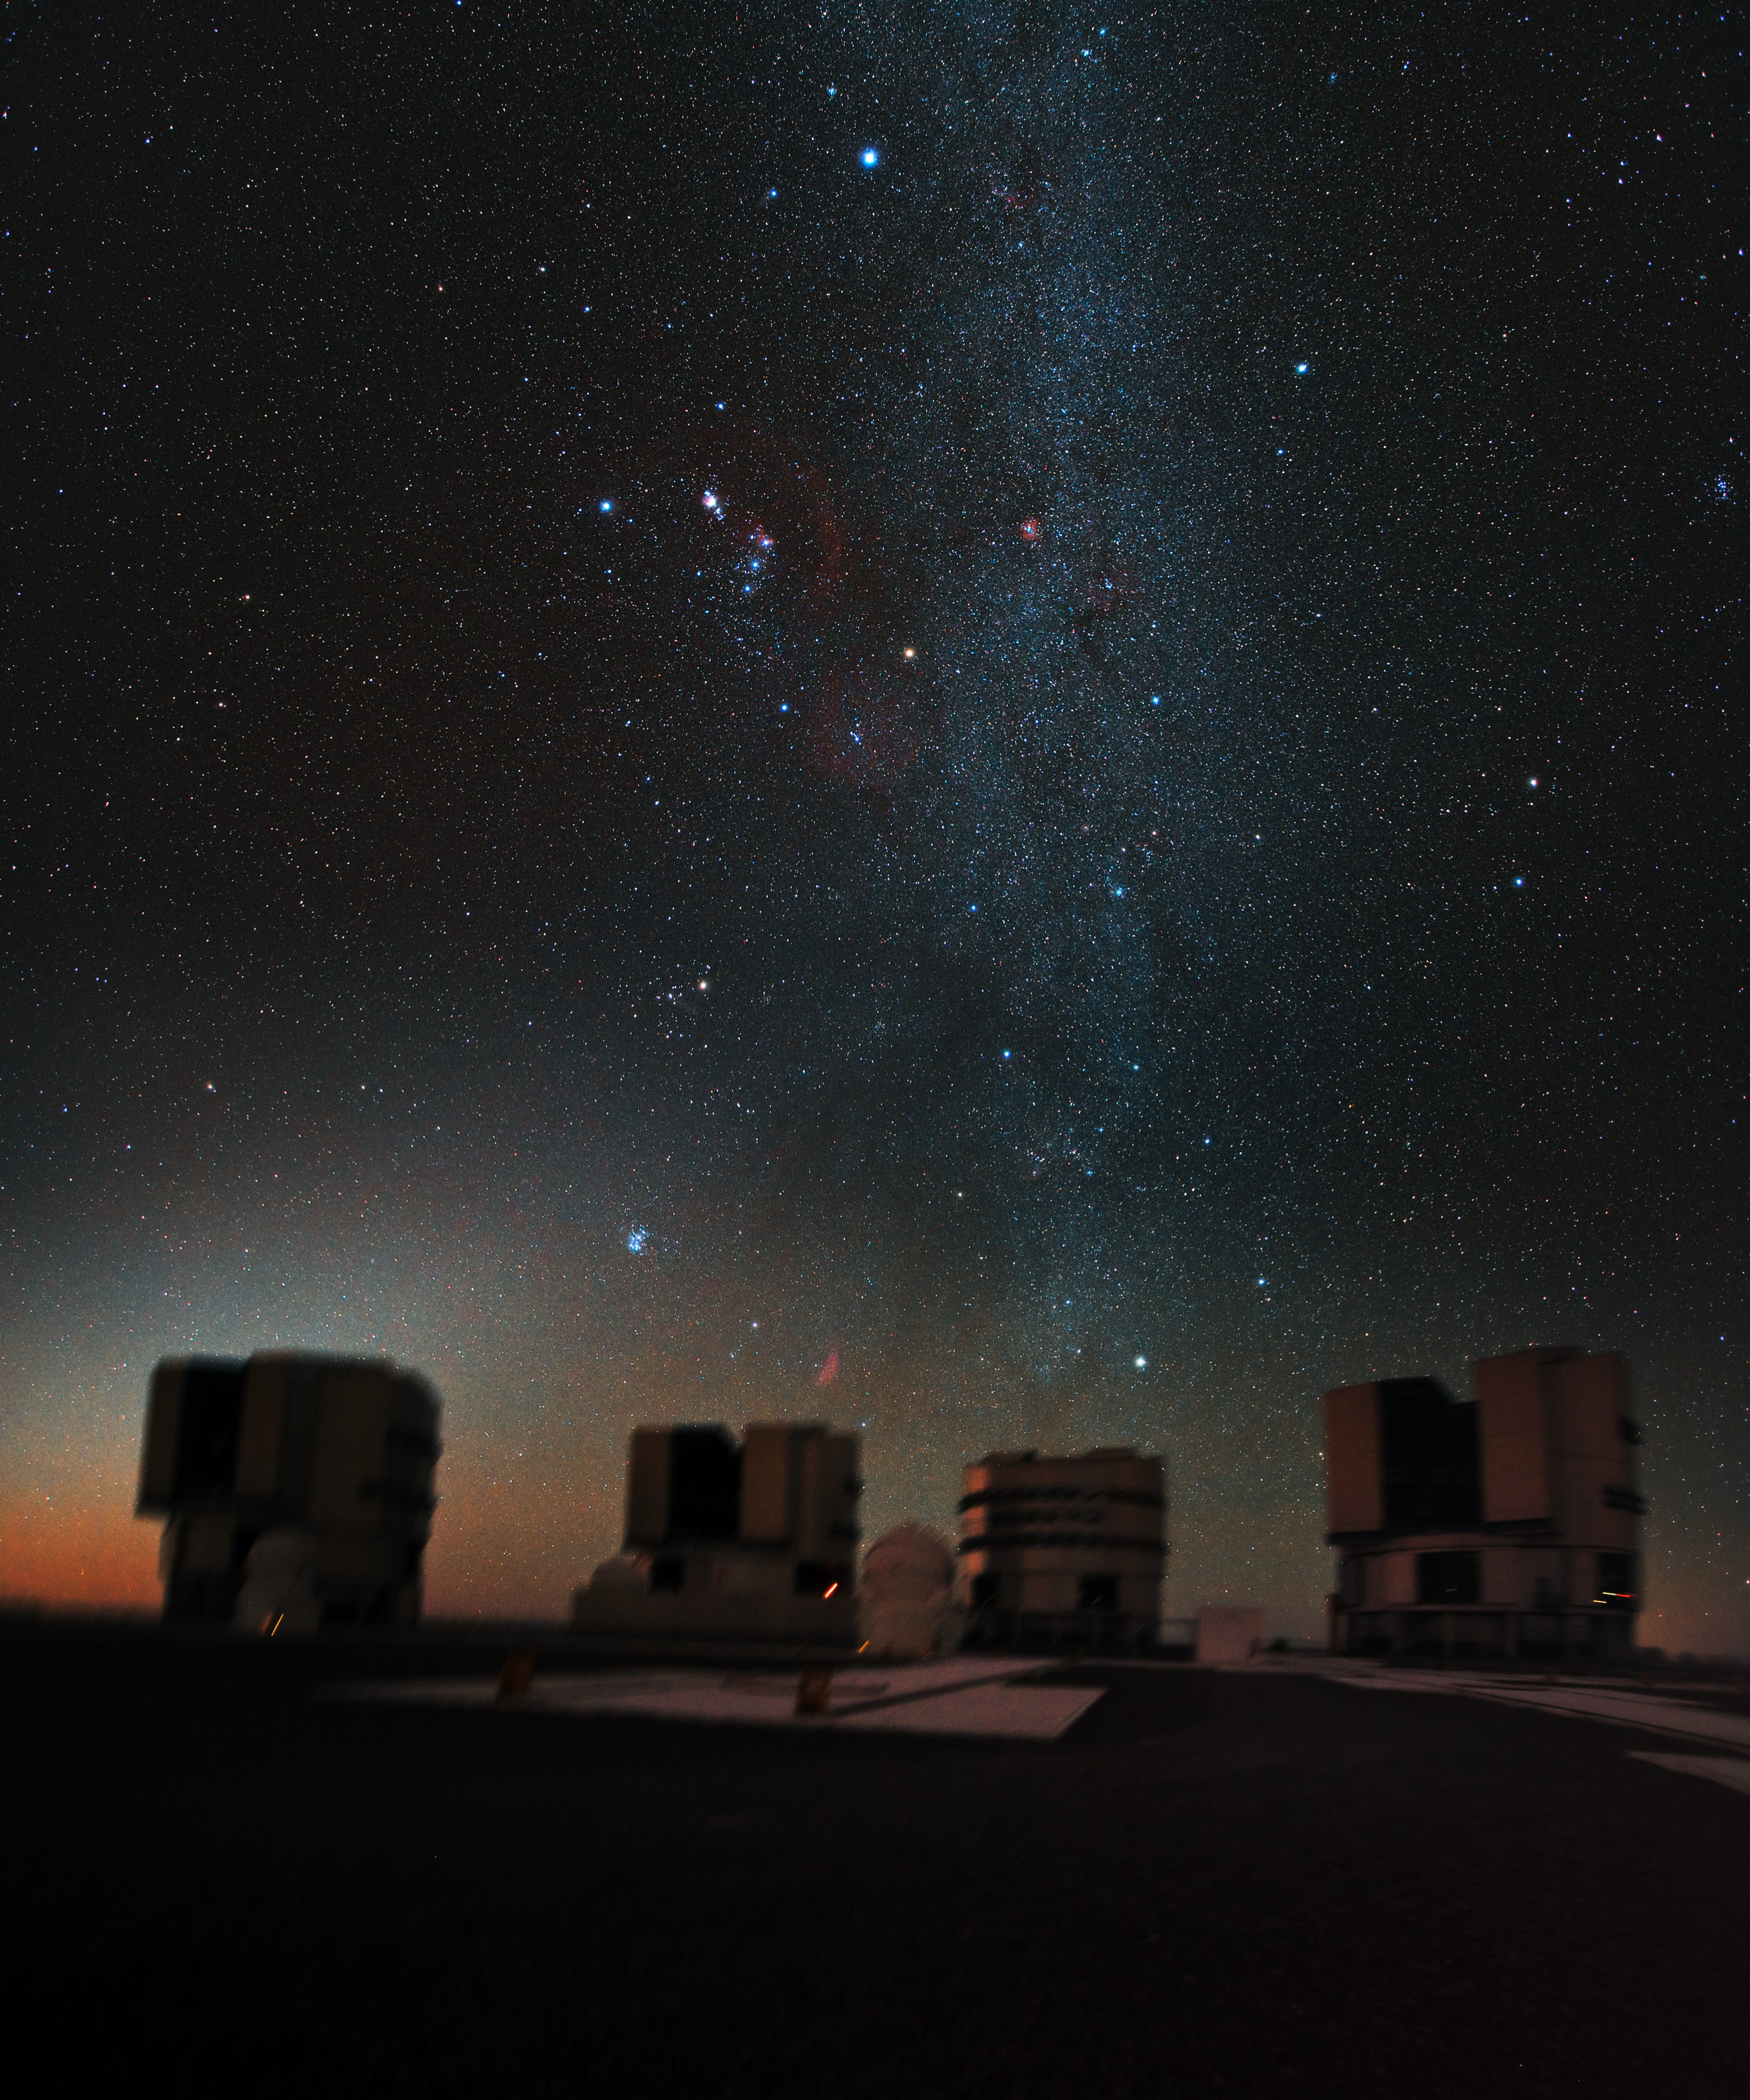 The great hunter Orion hangs above ESO's Very Large Telescope (VLT), in this stunning, previously unseen, image. As the VLT is in the Southern Hemisphere, Orion is seen here head down, as if plunging towards the Chilean Atacama Desert.  Image credit :ESO/ Y. Beletsky